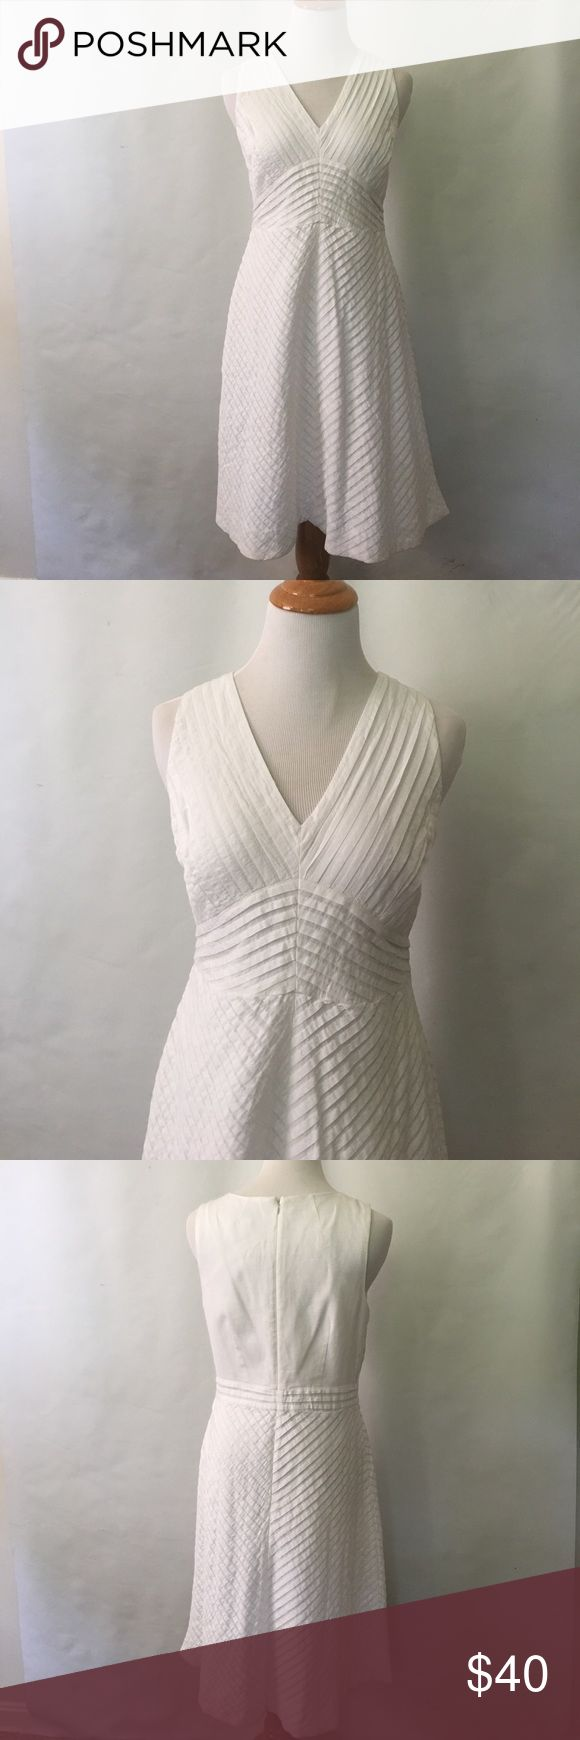 BNWT J.Crew Chevron Pleated dress 8 Brand new with tag. White, size 8. Has the bra holders inside (shoulders) and fully lined. 100% cotton. J.Crew website sells it for $148. J. Crew Dresses